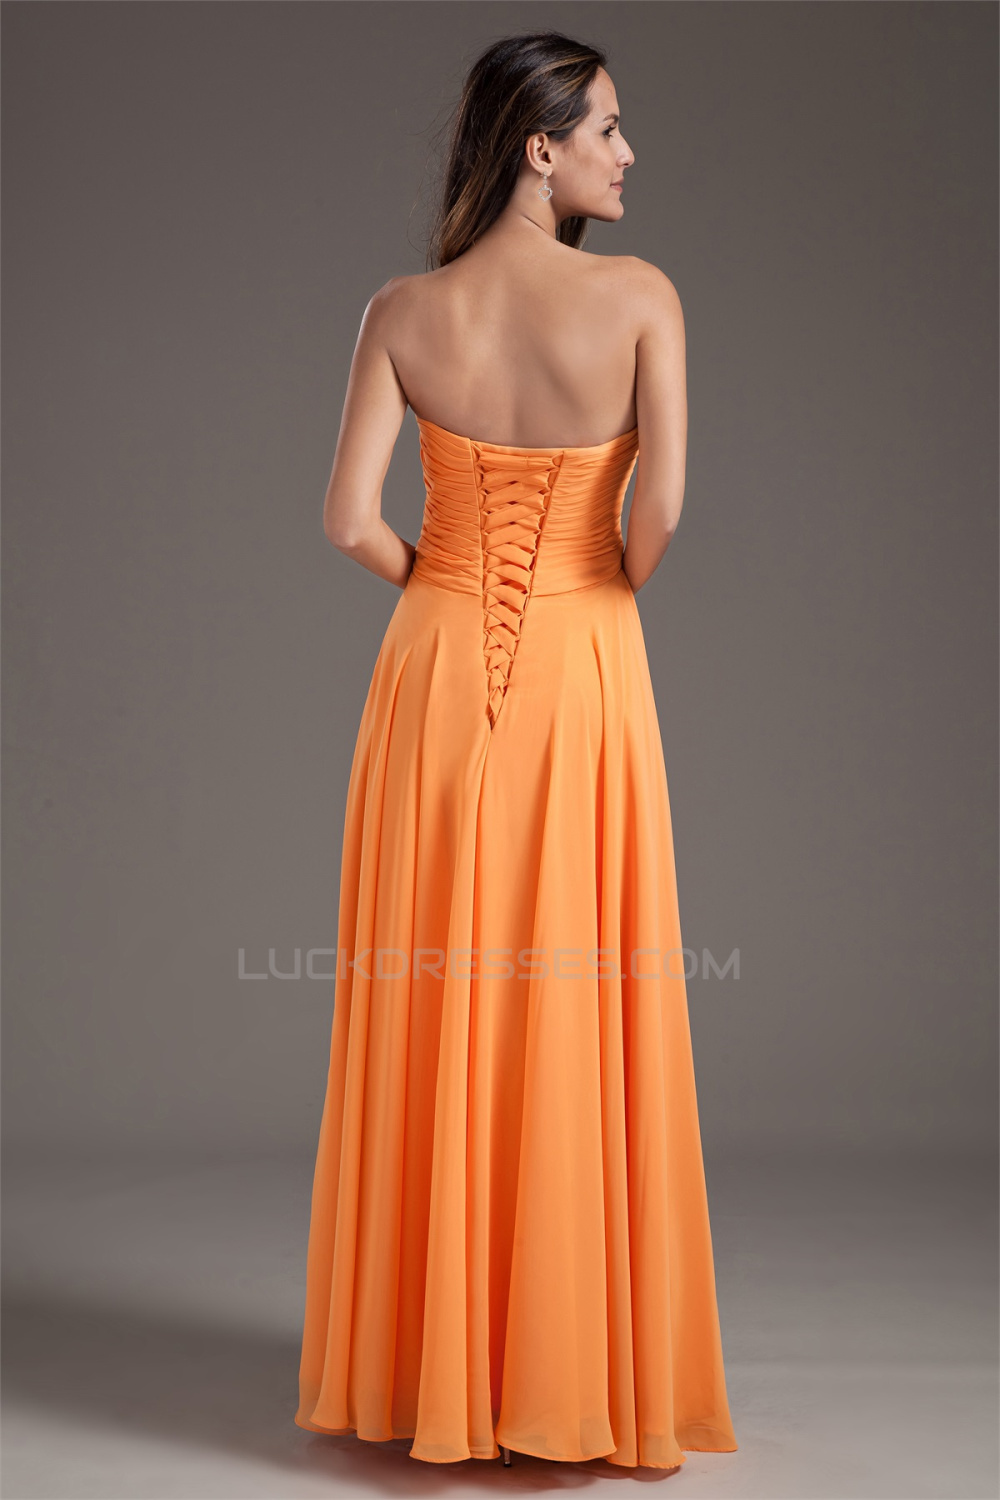 684c7869a5d4 A-Line Sweetheart Floor-Length Chiffon Pleats Long Bridesmaid Dresses  02010155